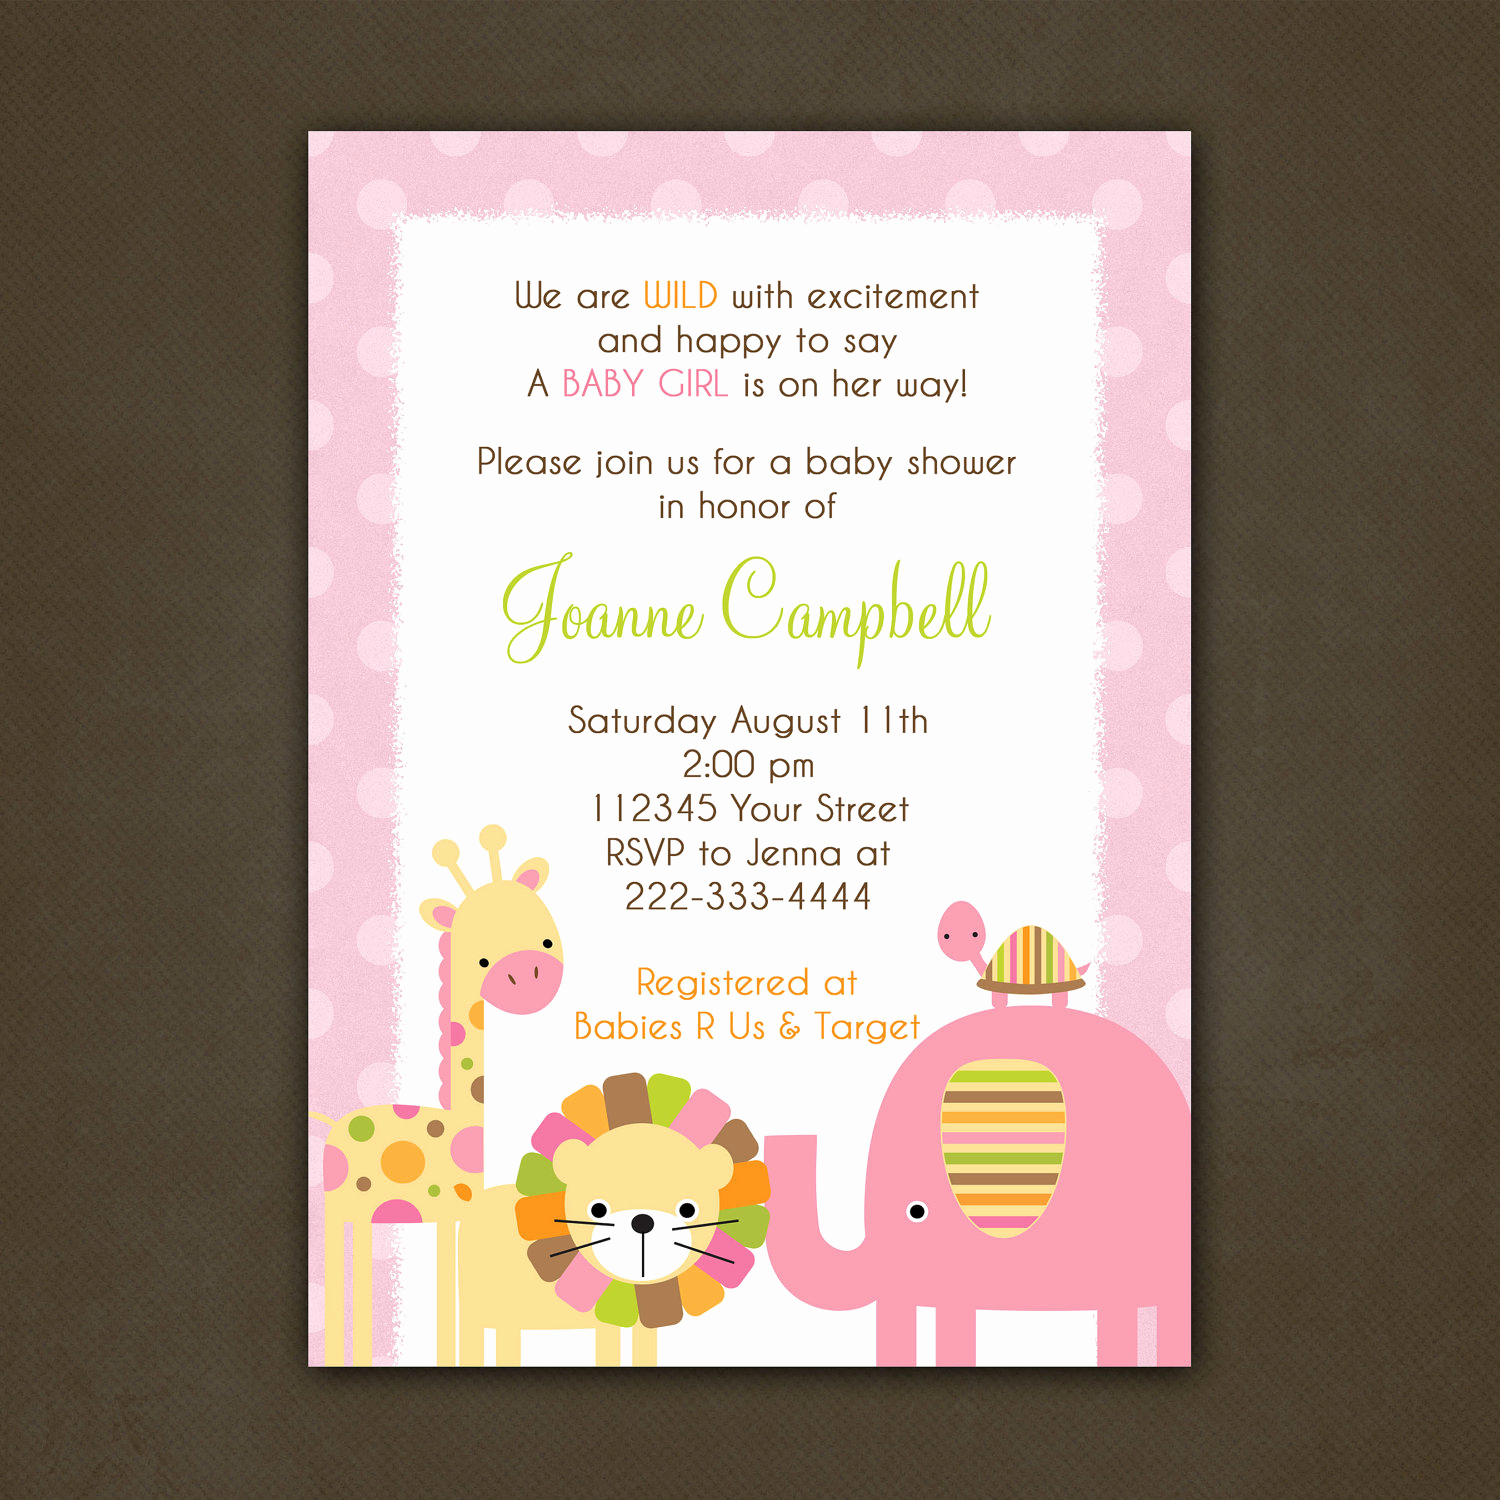 Baby Shower Invitation Messages Inspirational Baby Shower Invitation Wording Image